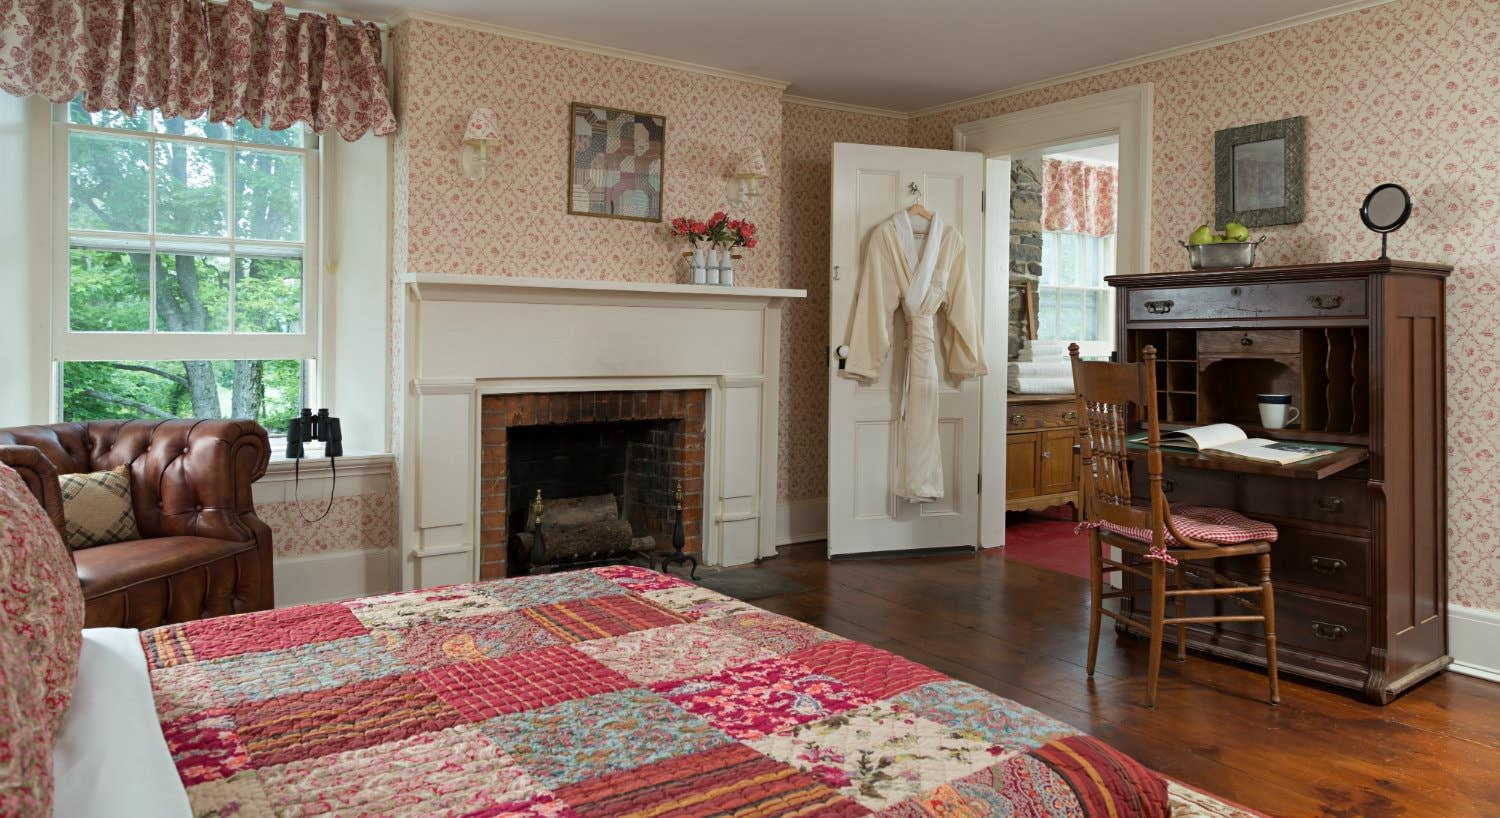 Spacious cozy room with warm wood floors, large windows, red floral quilted bed, fireplace and antique secretary